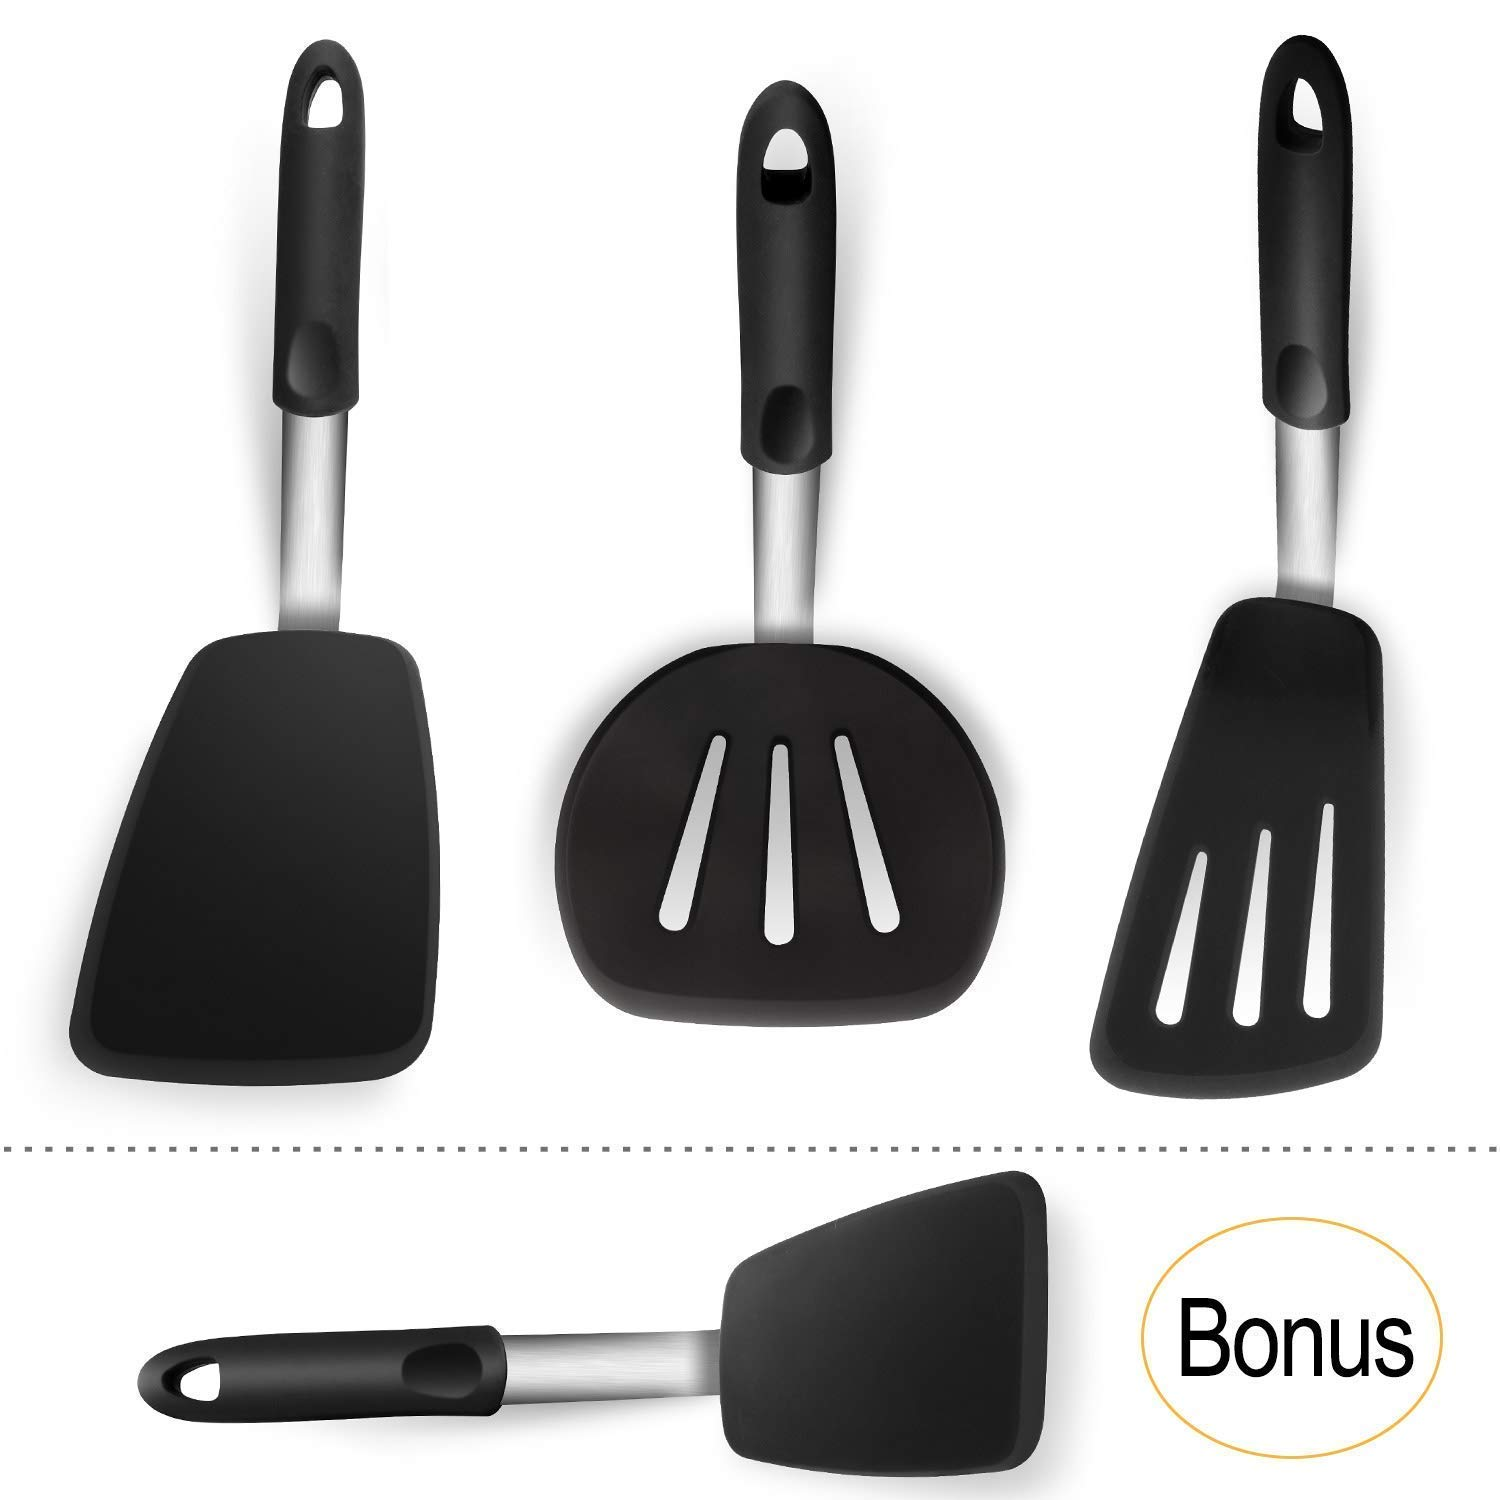 Extra Large Rubber Spatulas Silicone Heat Resistant BPA Free Spatula Set - XL Slotted Turner Spatula, XL Slotted Wide Spatula/Pancake Flipper, XL Spatula/Egg Turner, Silicone Spatula Set